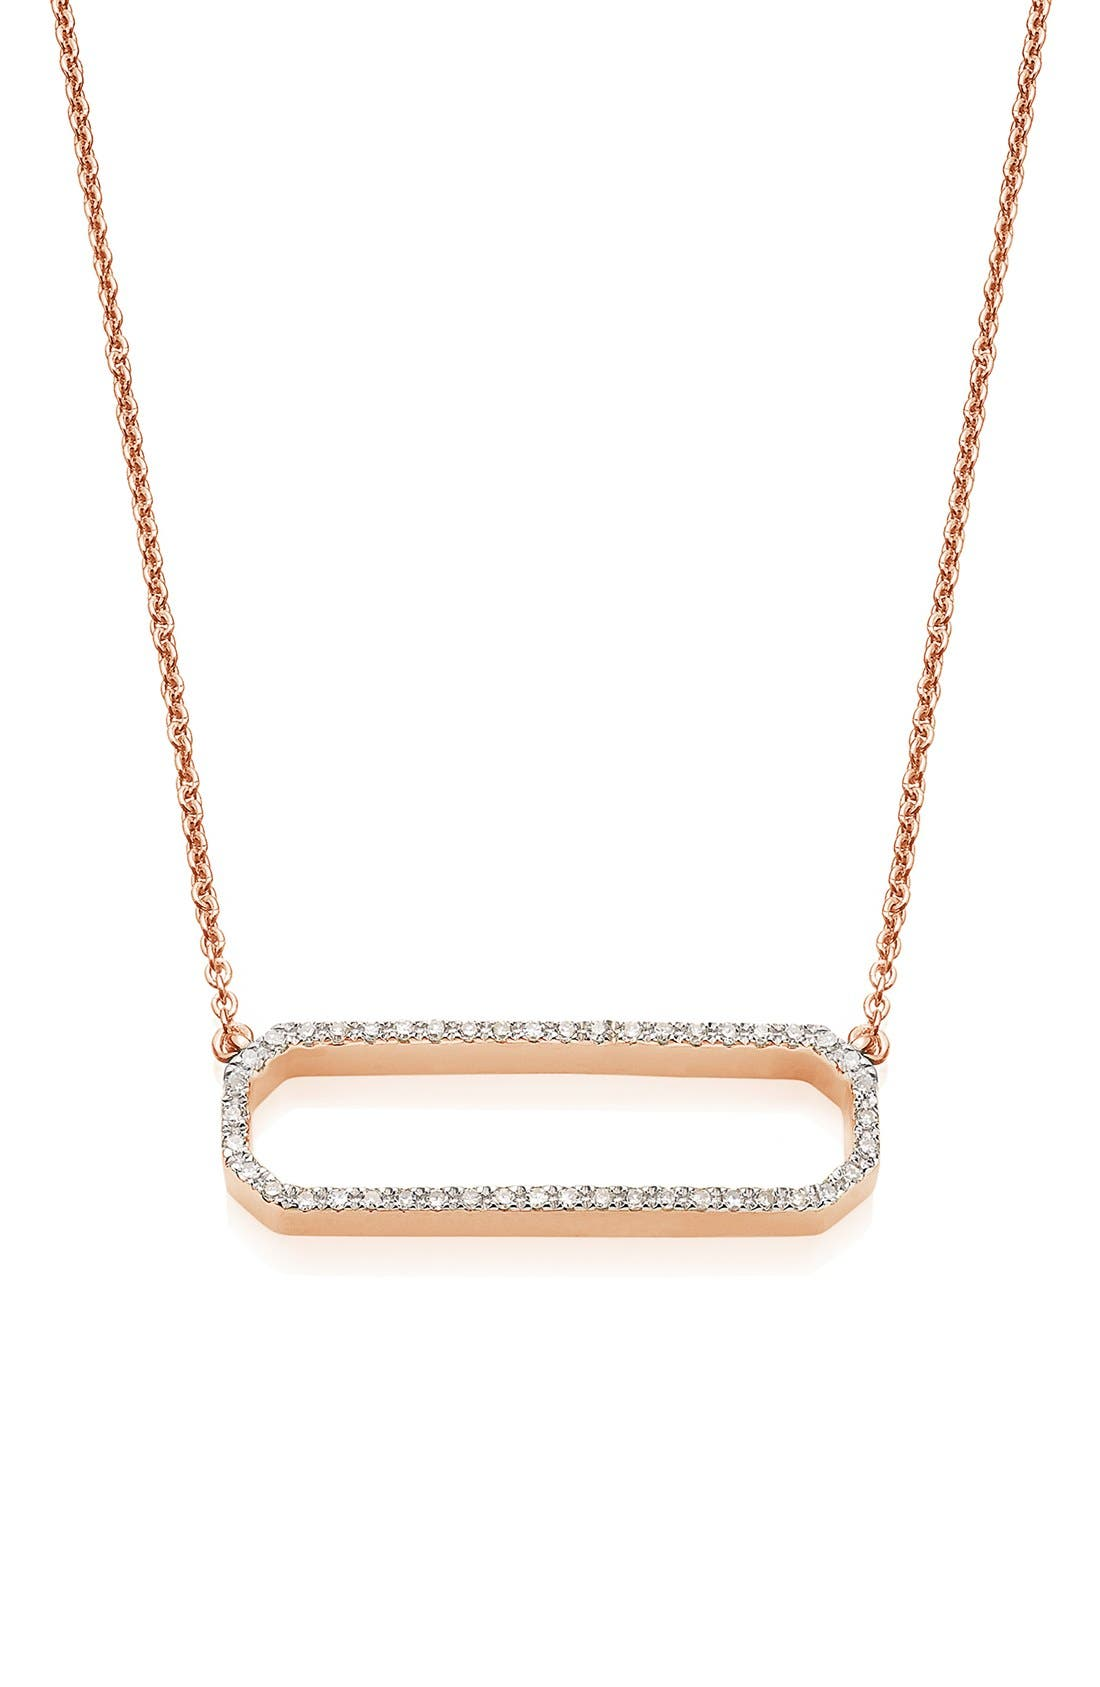 MONICA VINADER Naida Open Rectangle Diamond Pendant Necklace